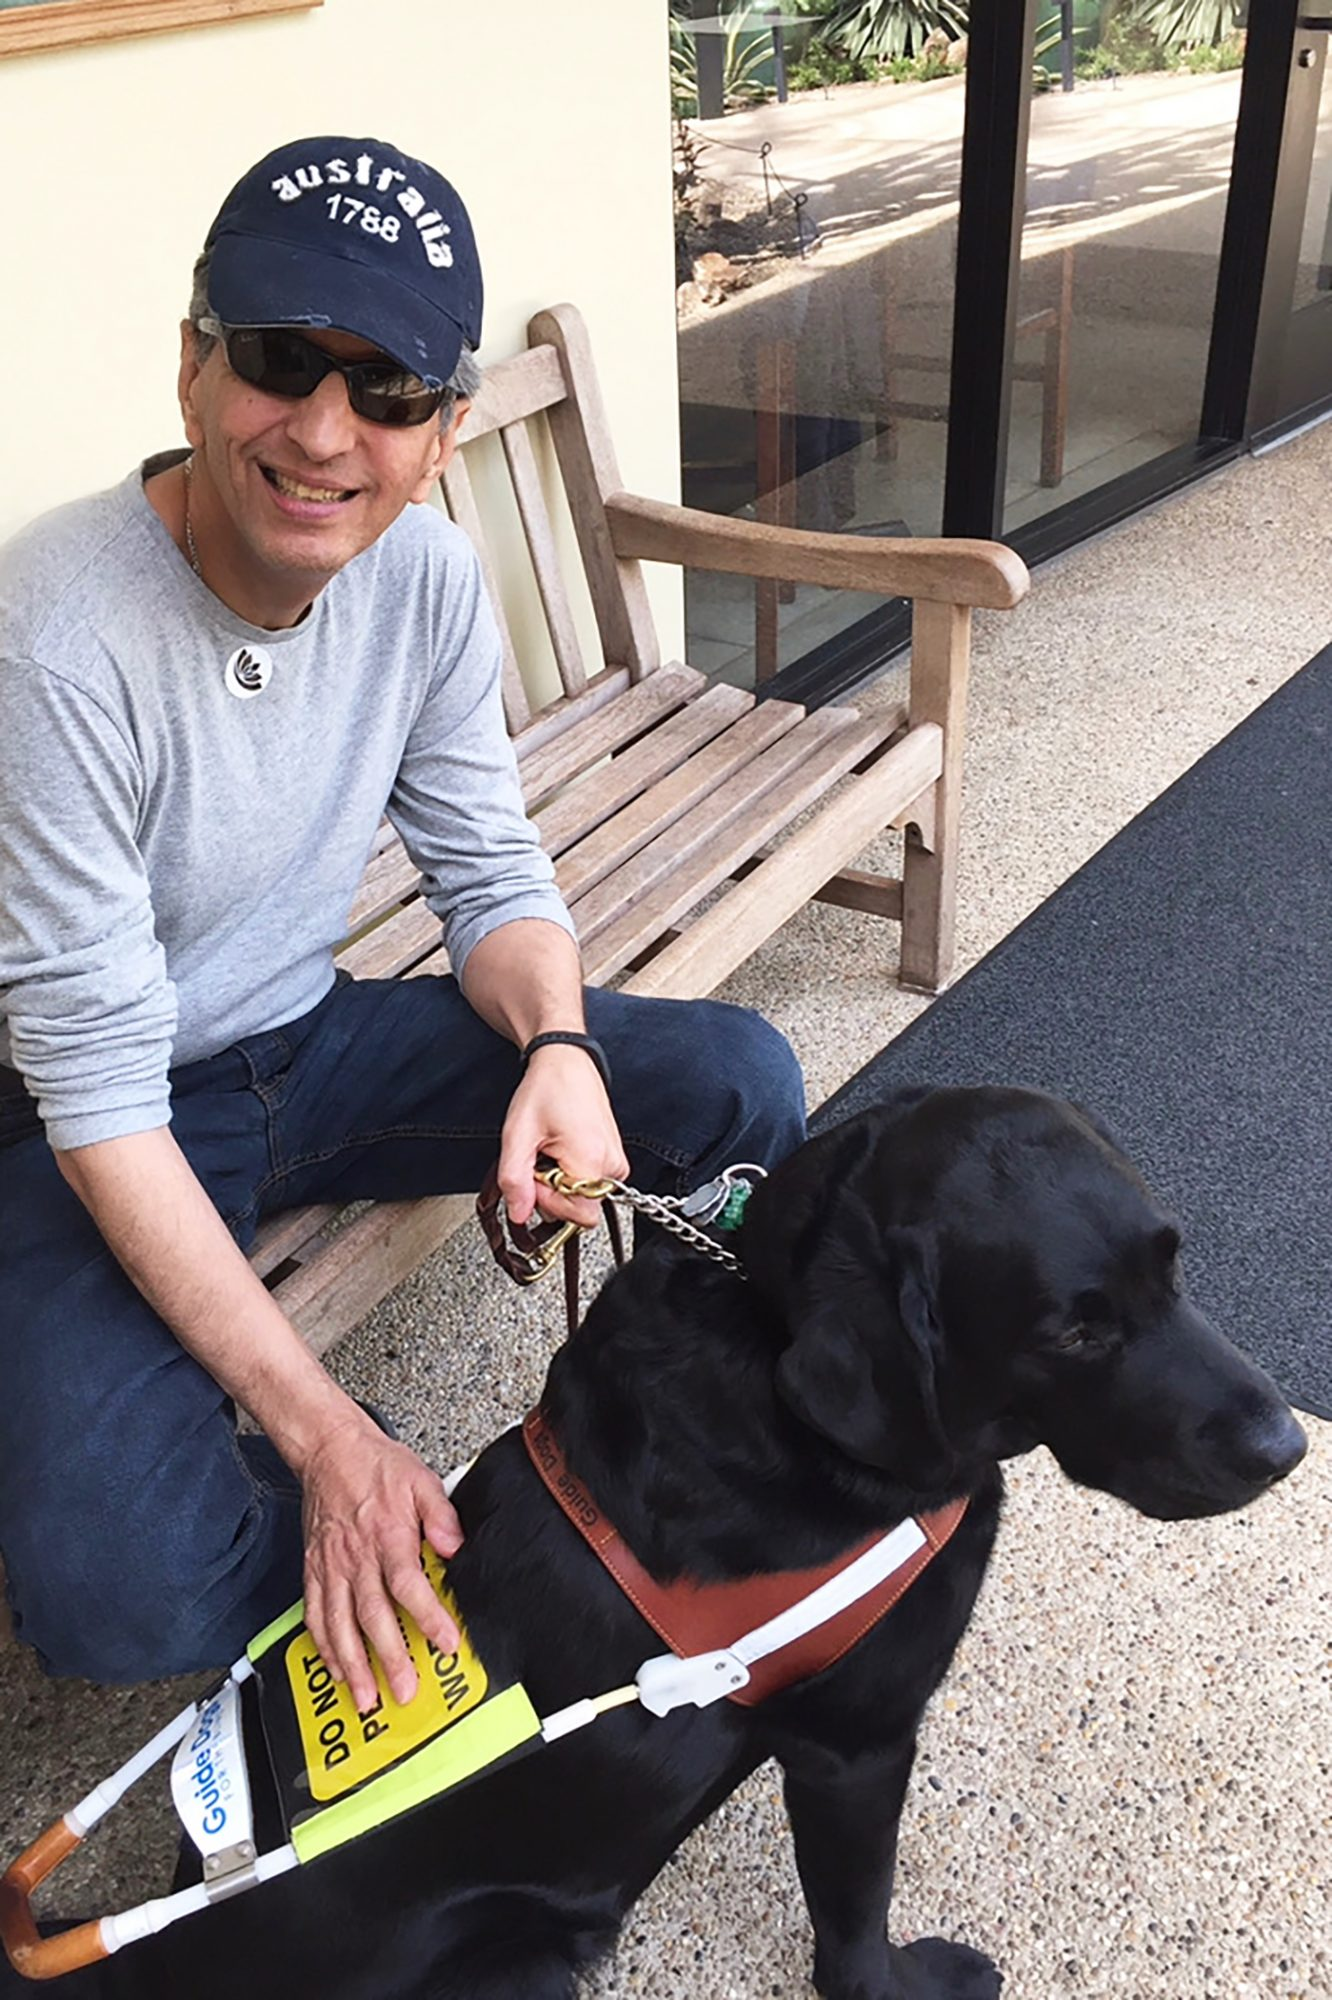 Nadir Mehta and his service dog Yamaha sitting on a bench